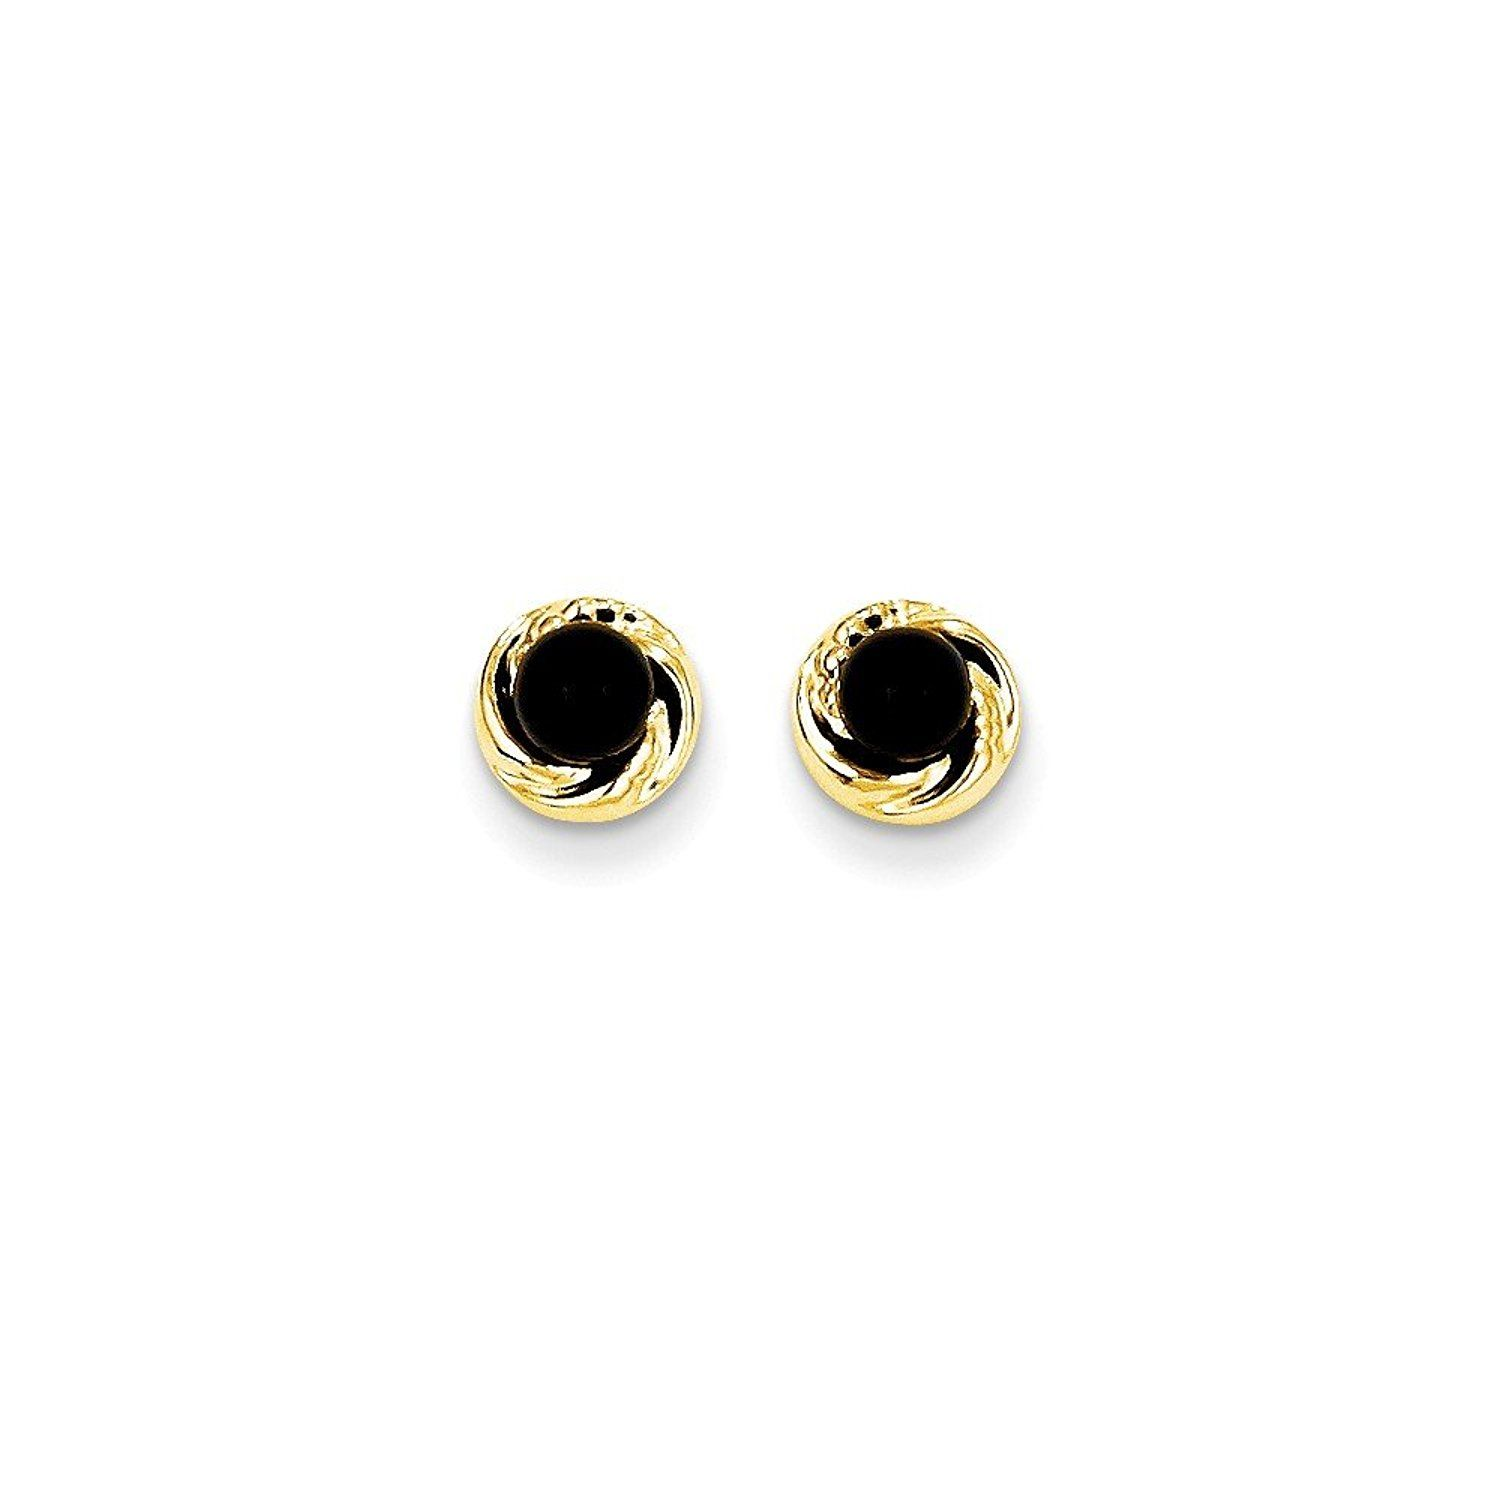 PARIKHS Yellow Gold Ball Earrings High Polished 7MM 14k with Silicone Protected Gold Pushbacks